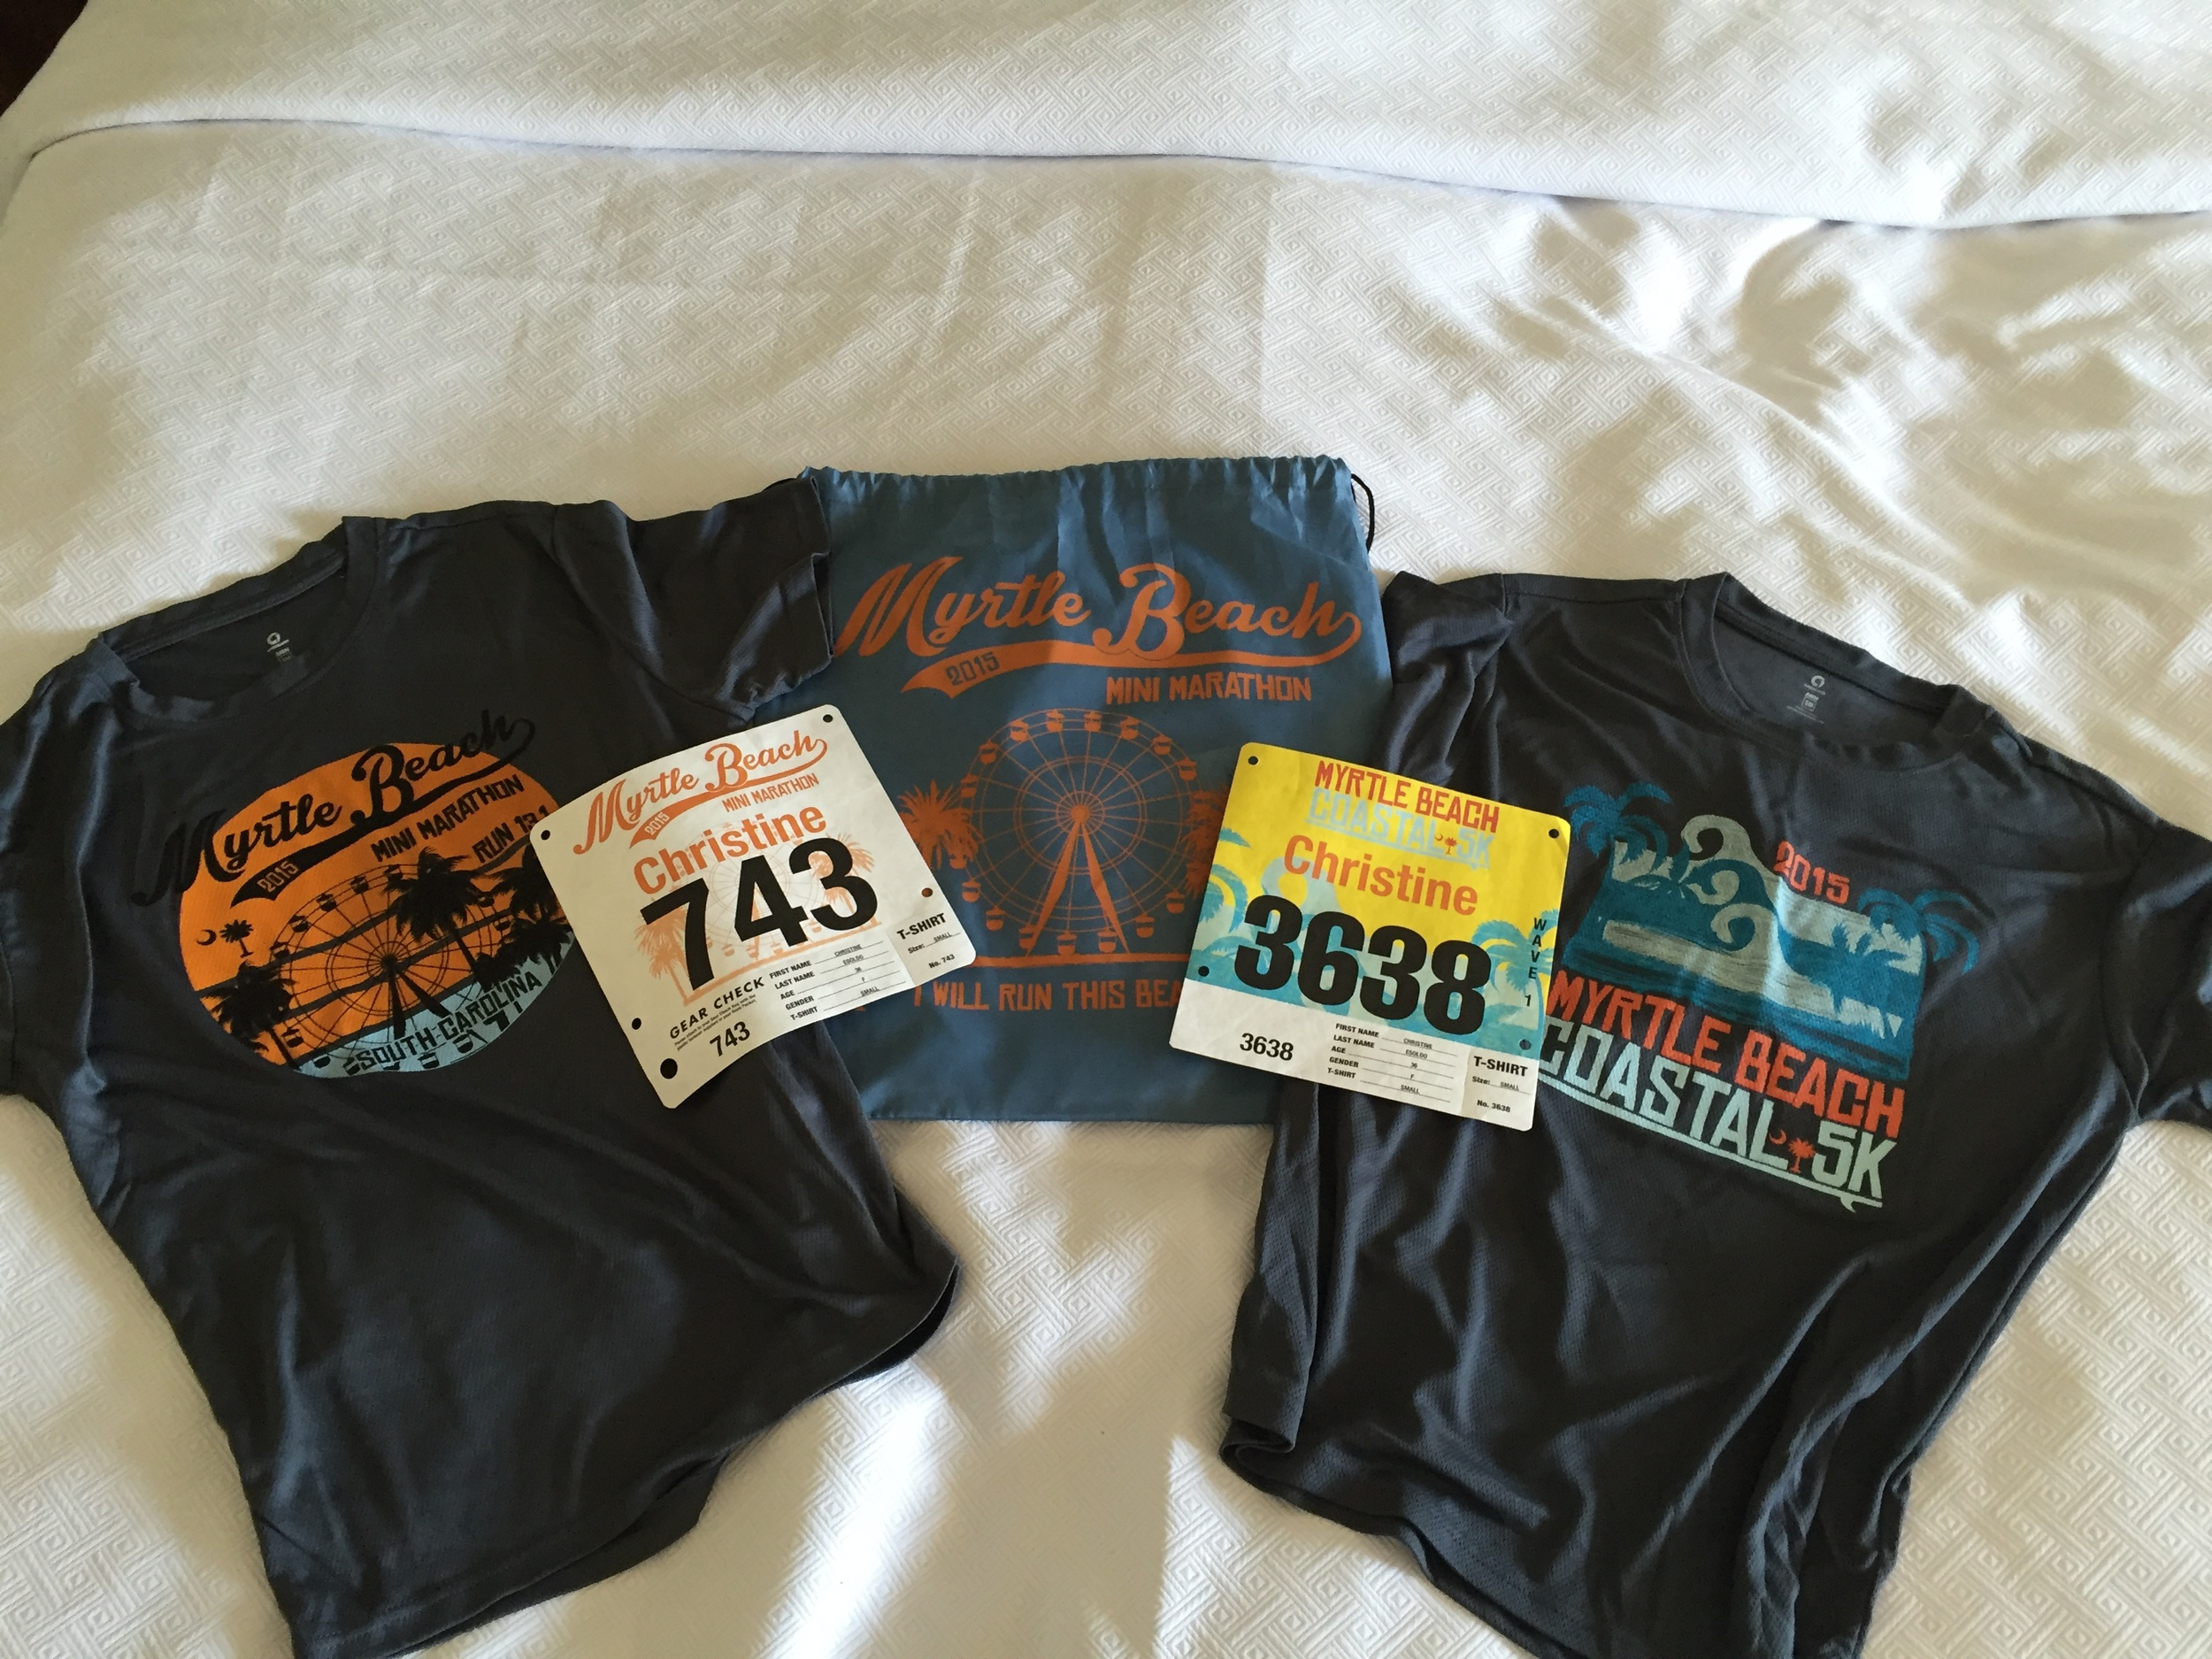 race shirts and bibs